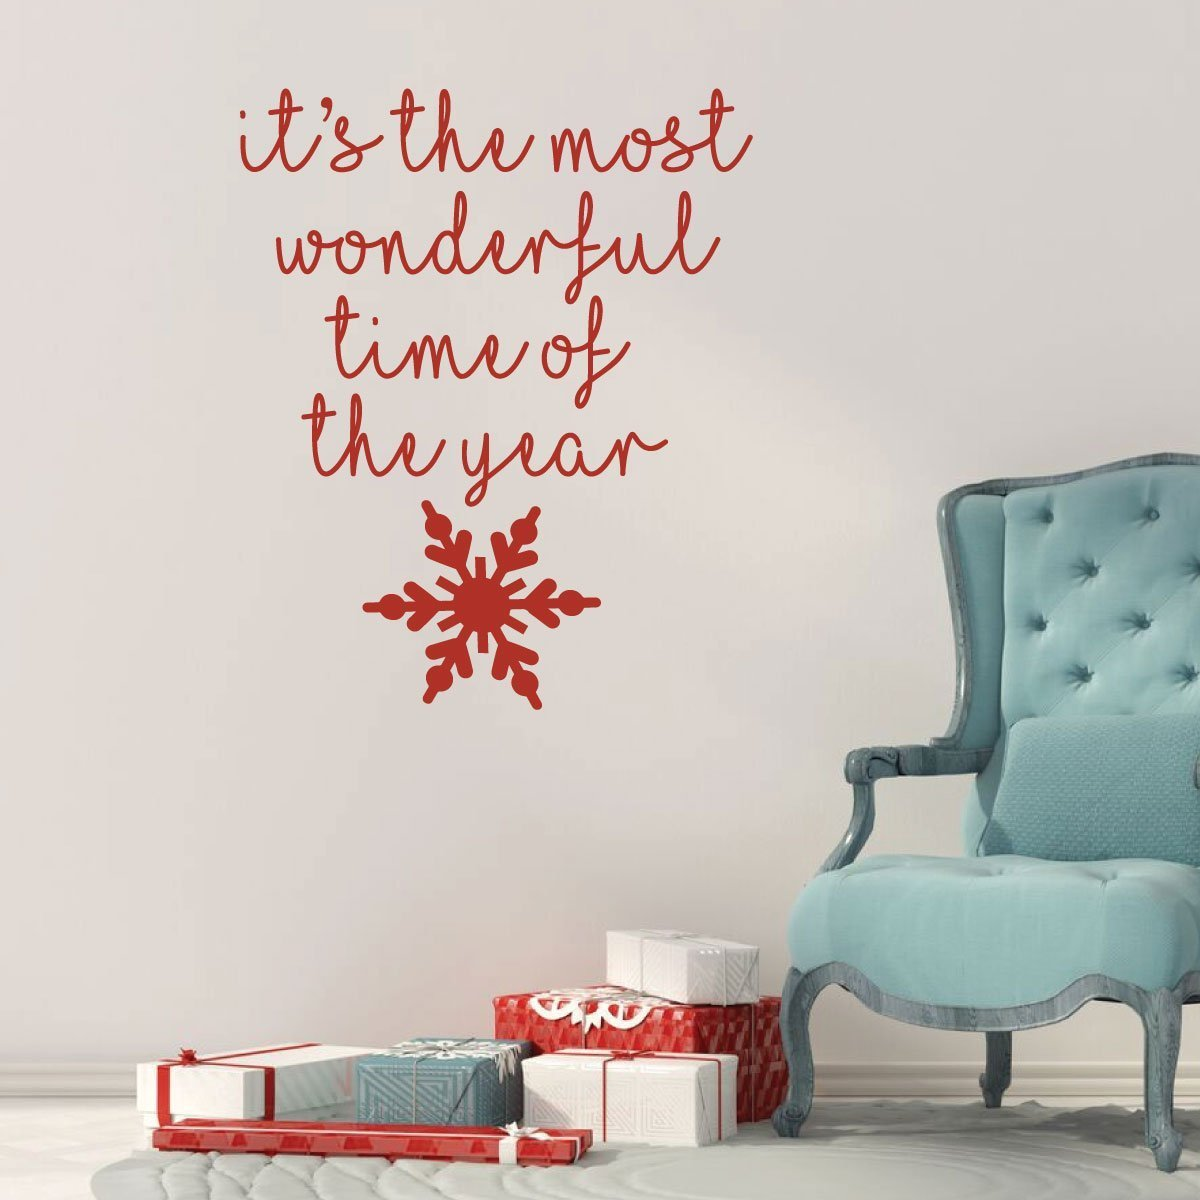 Christmas Wall Decals Removable.Christmas Wall Decal Its Vinyl Decor Wall Decal